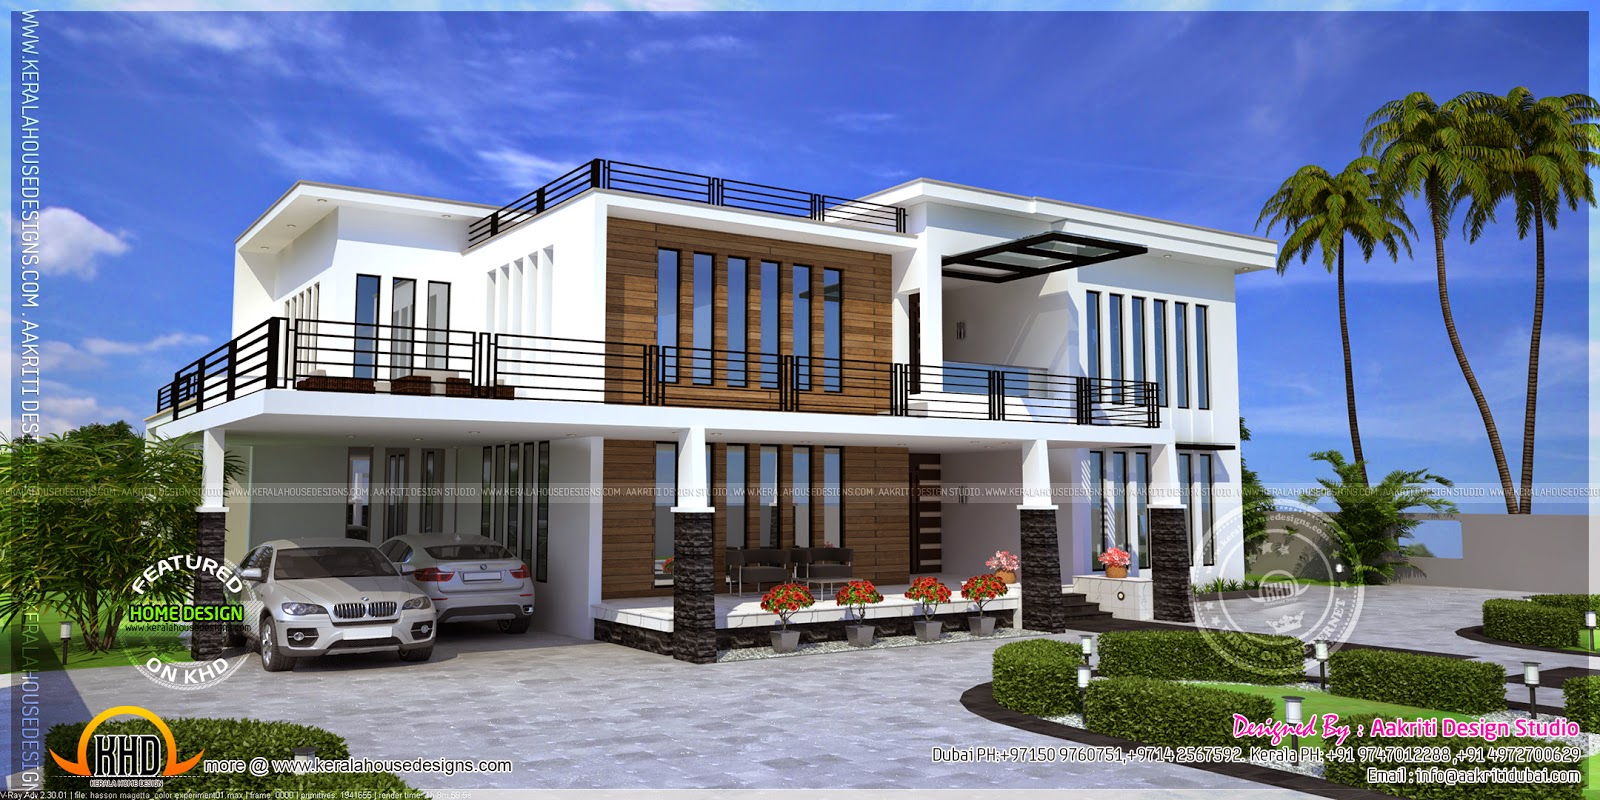 Contemporary house view kerala home design and floor plans for House design outside view